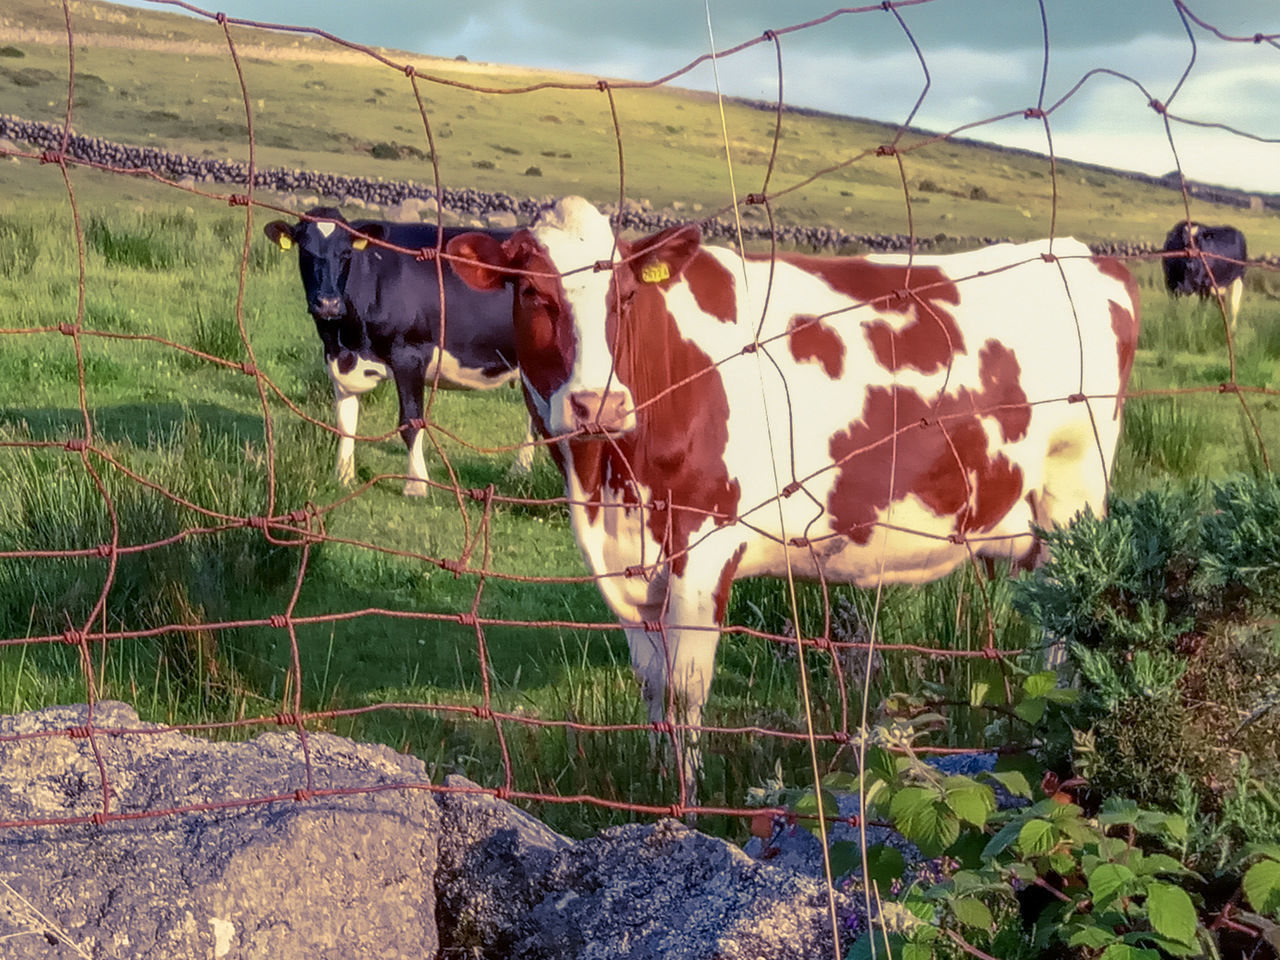 domestic animals, mammal, pets, domestic, animal themes, livestock, animal, cattle, cow, grass, vertebrate, plant, field, land, group of animals, standing, nature, day, no people, domestic cattle, outdoors, herbivorous